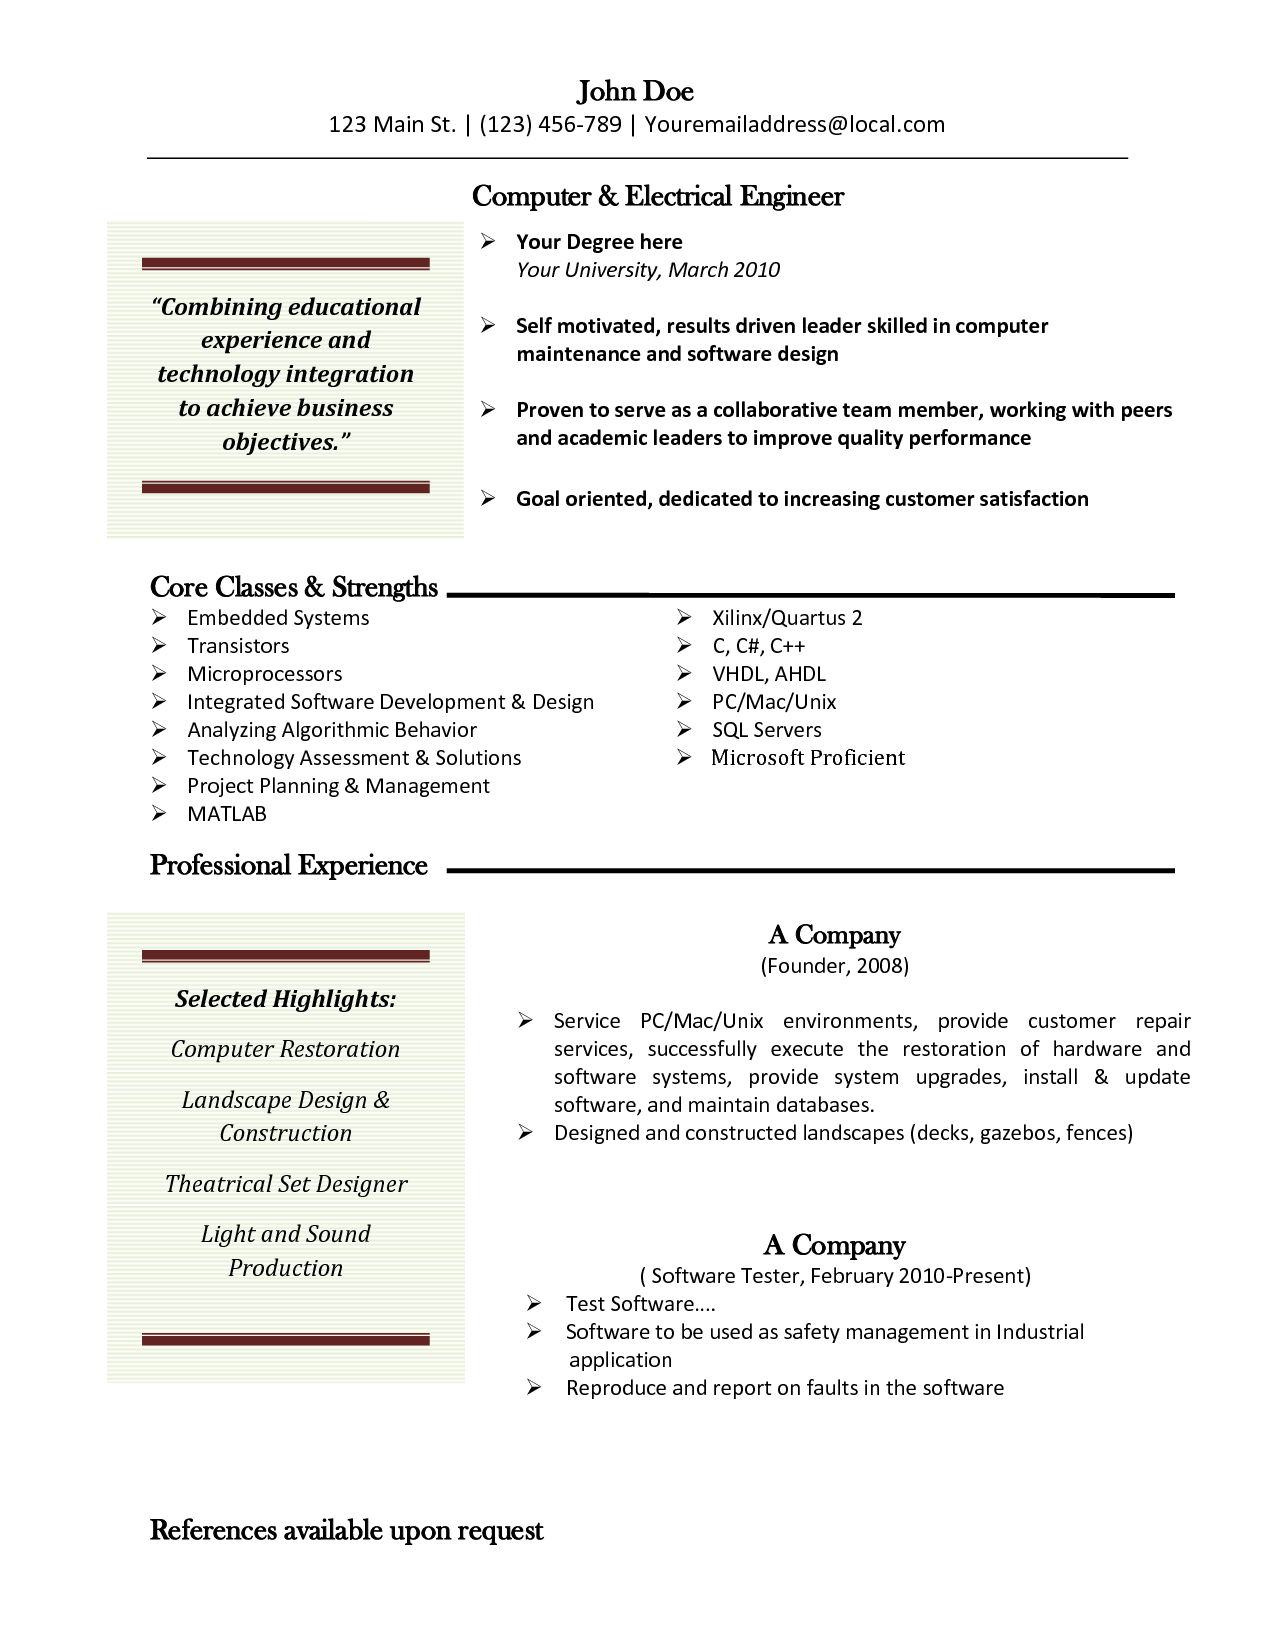 Resume Format Microsoft Word Classy Resume Templates For Mac  Httpwwwjobresumewebsiteresume Decorating Design